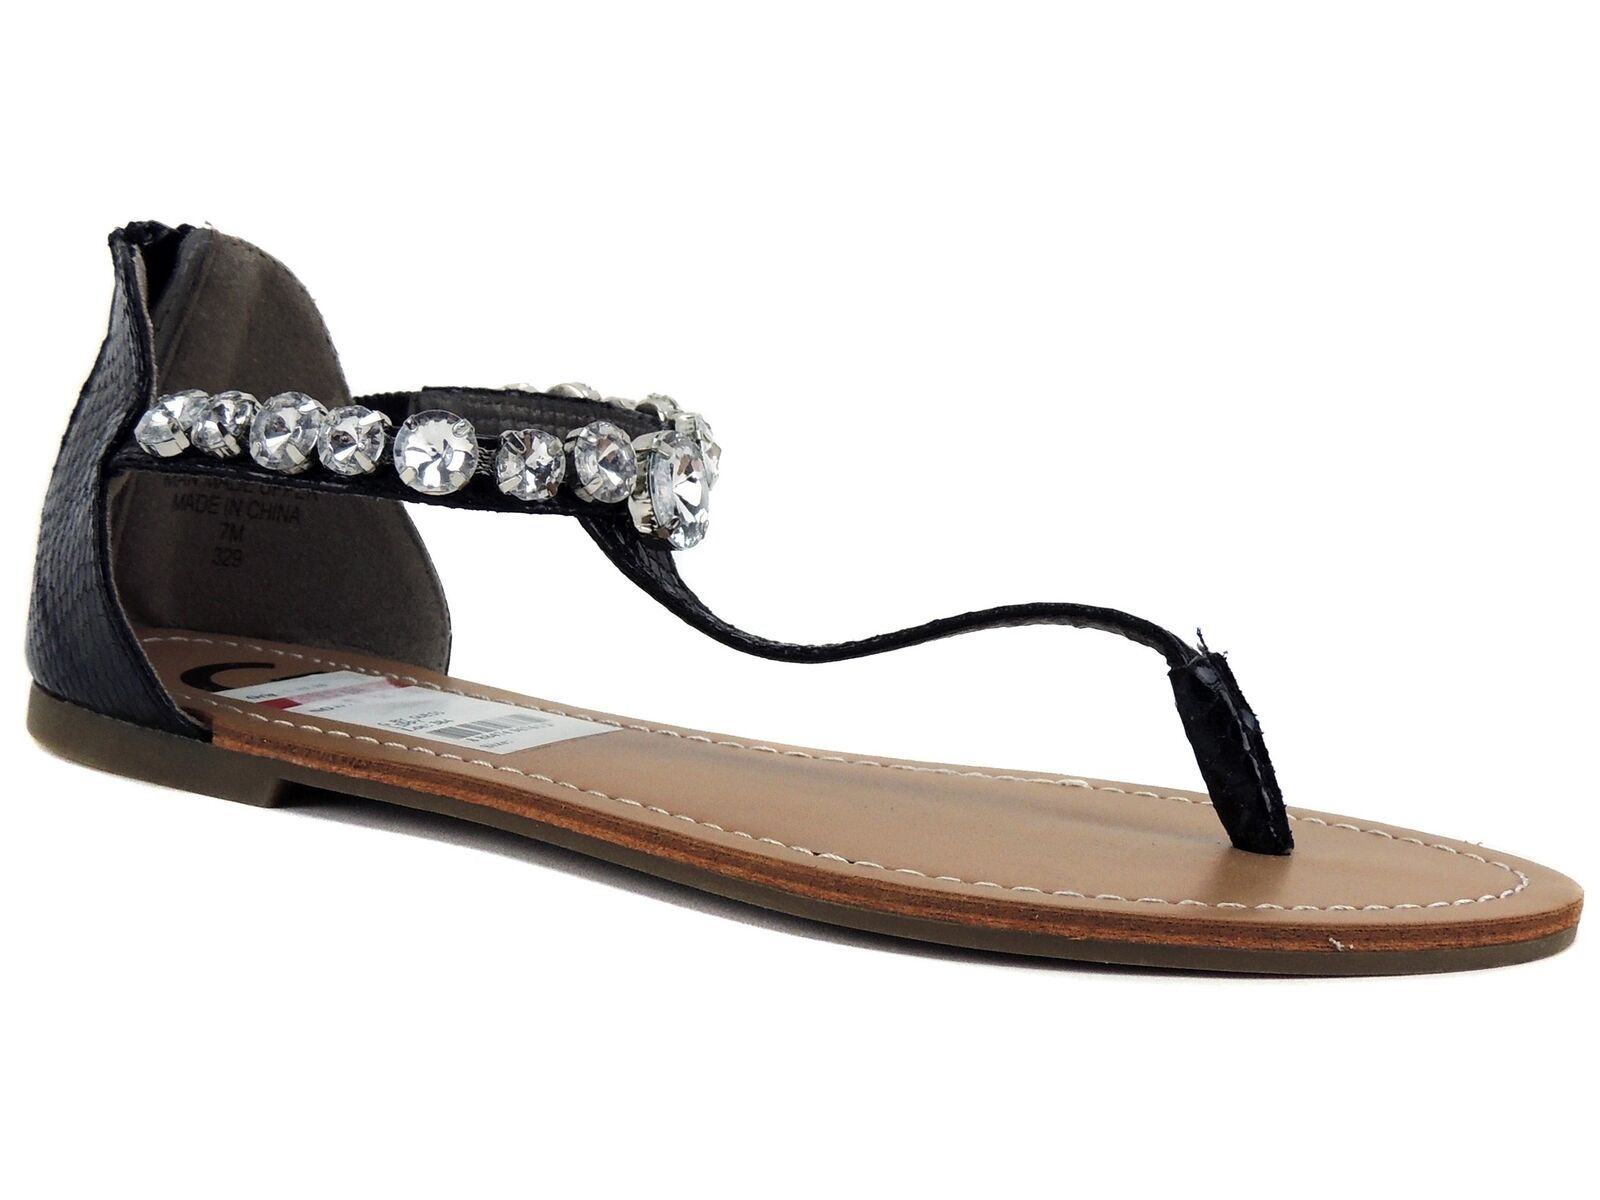 G By Guess Women's Lippy Flat Thong Sandals 7 Black Snake Print Size 7 Sandals M 65125f